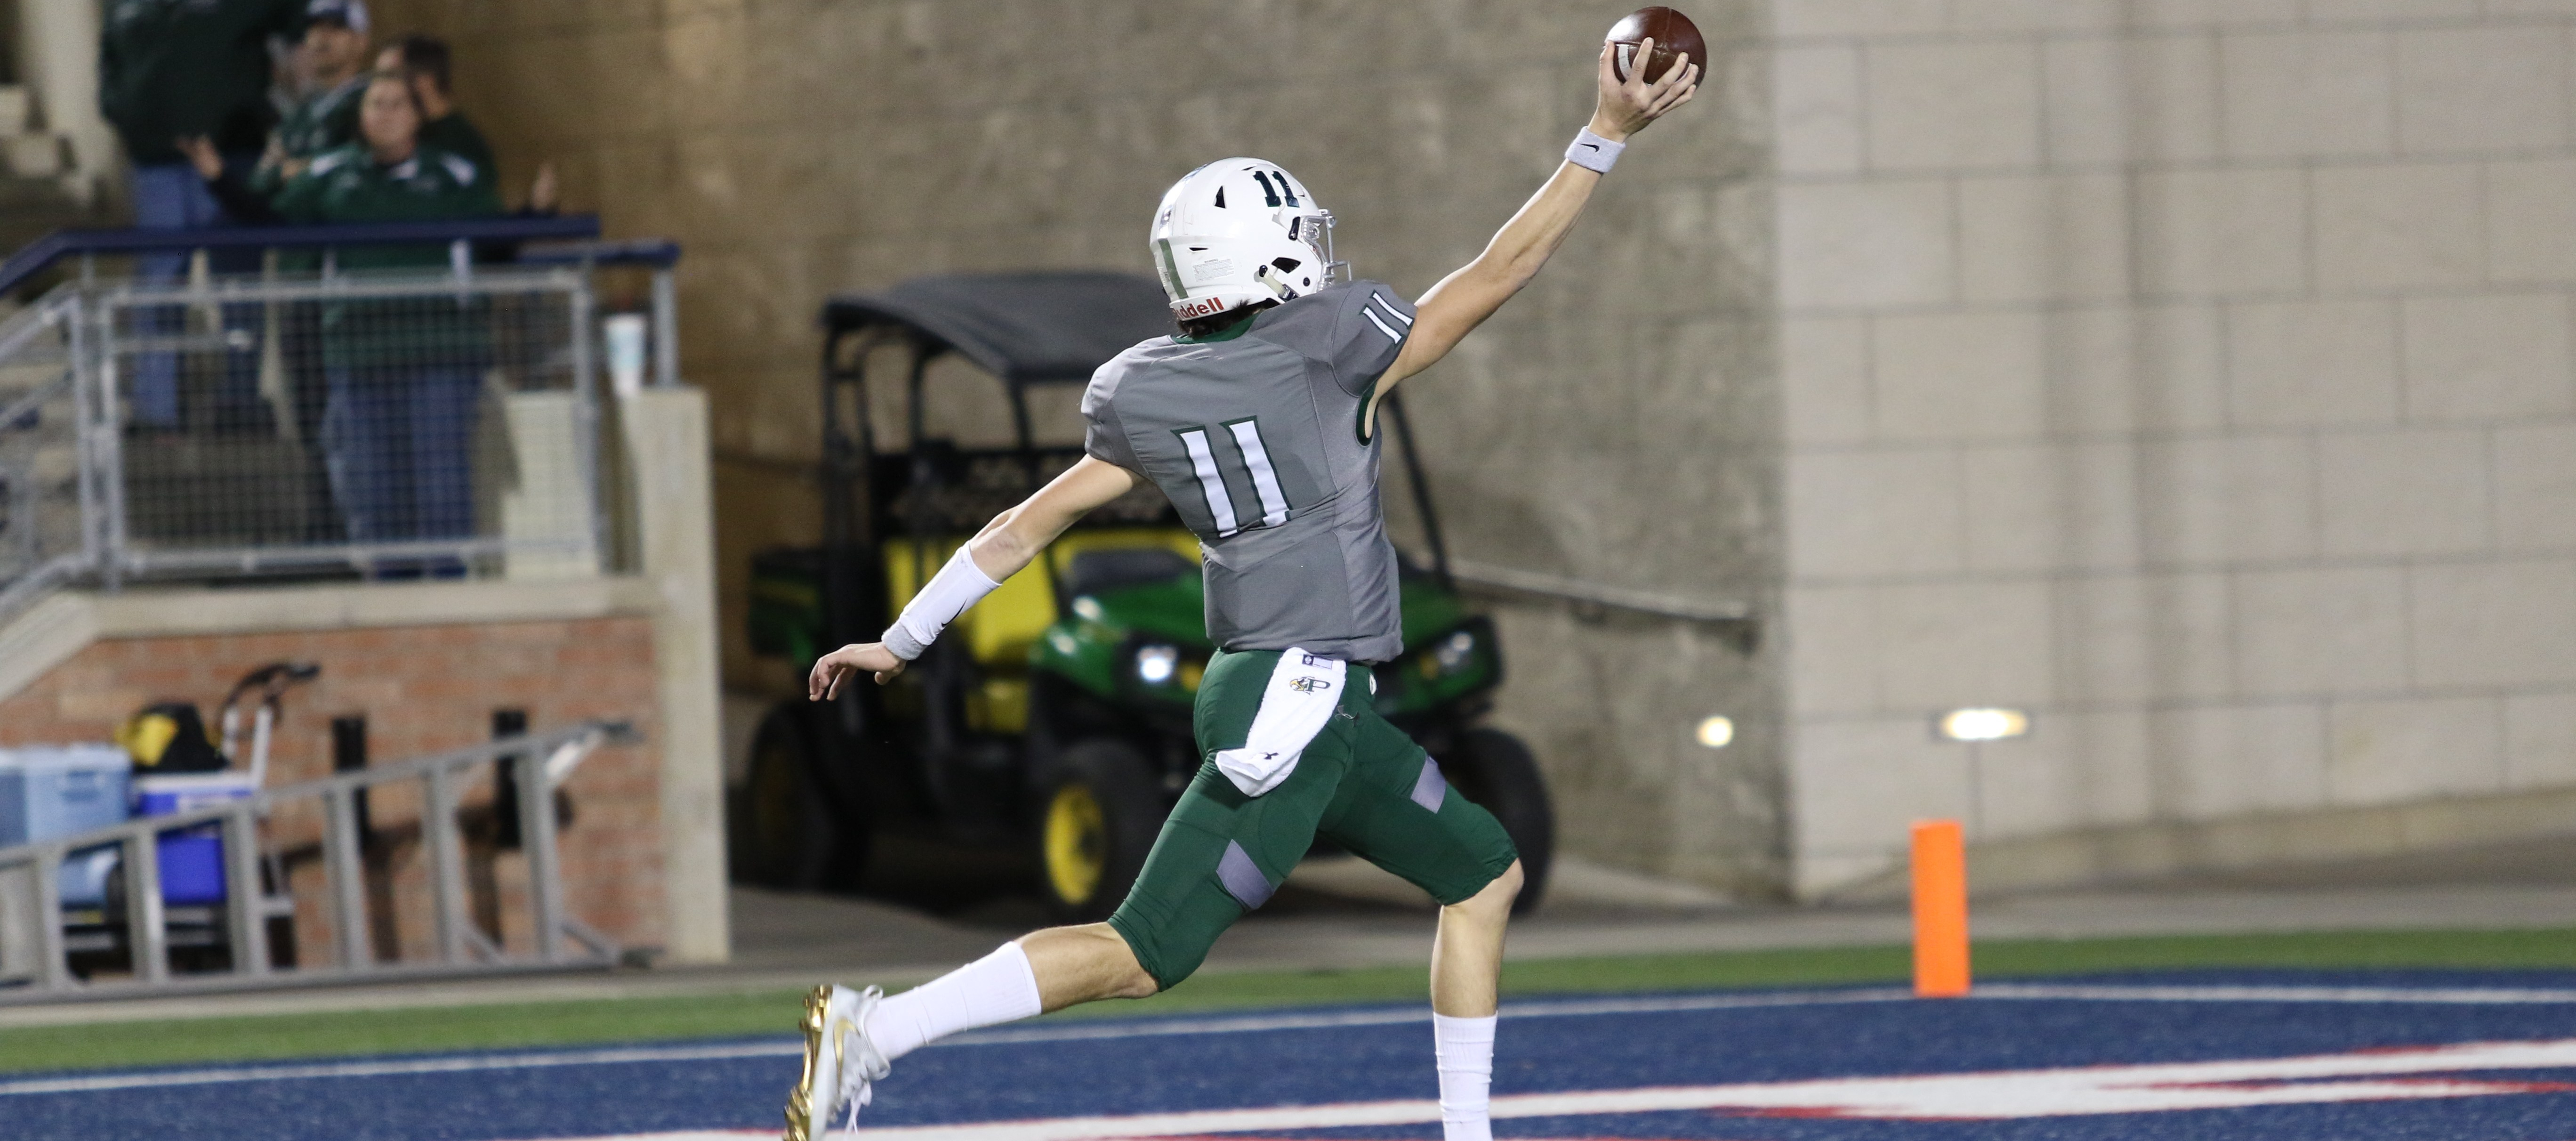 Prosper Eagles Best Poteet in Area Championship, Ready for Rematch with Lake Ridge